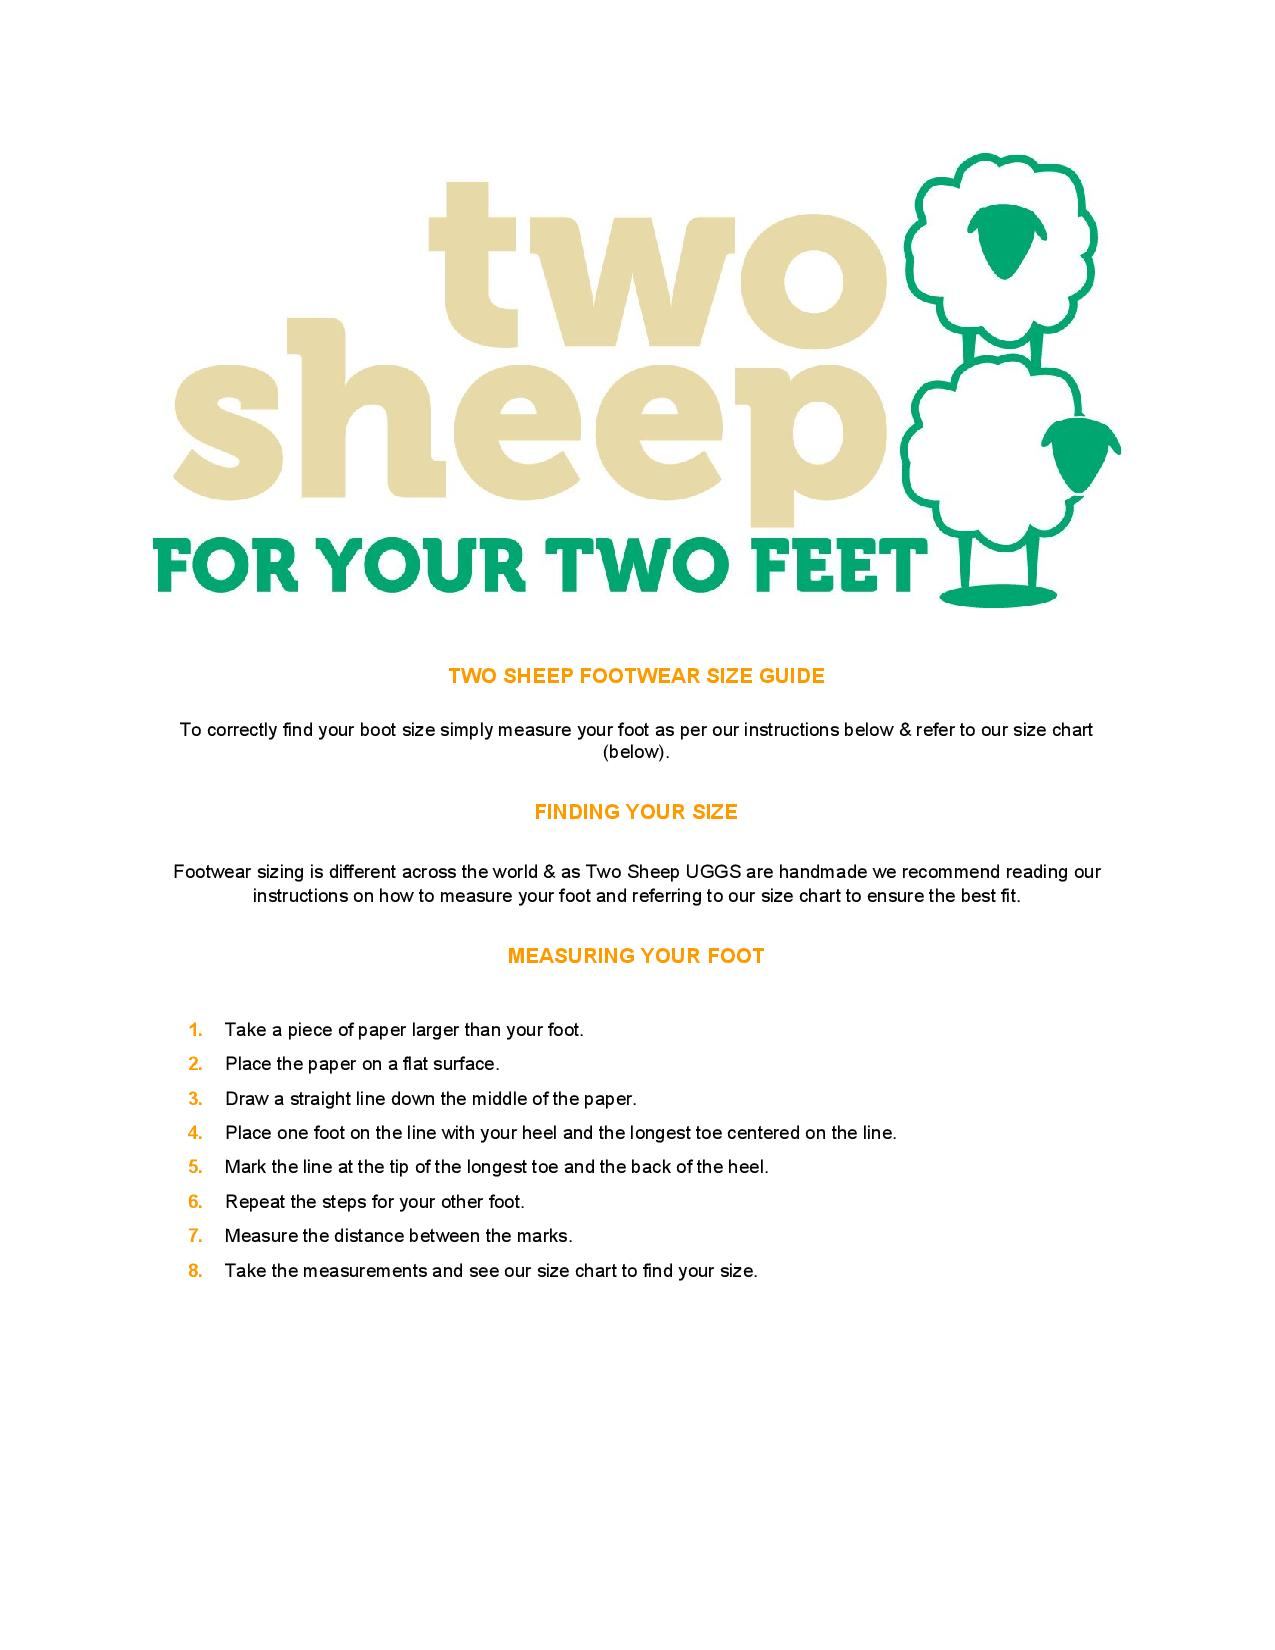 two-sheep-footwear-size-guide-pdf-page-001.jpg